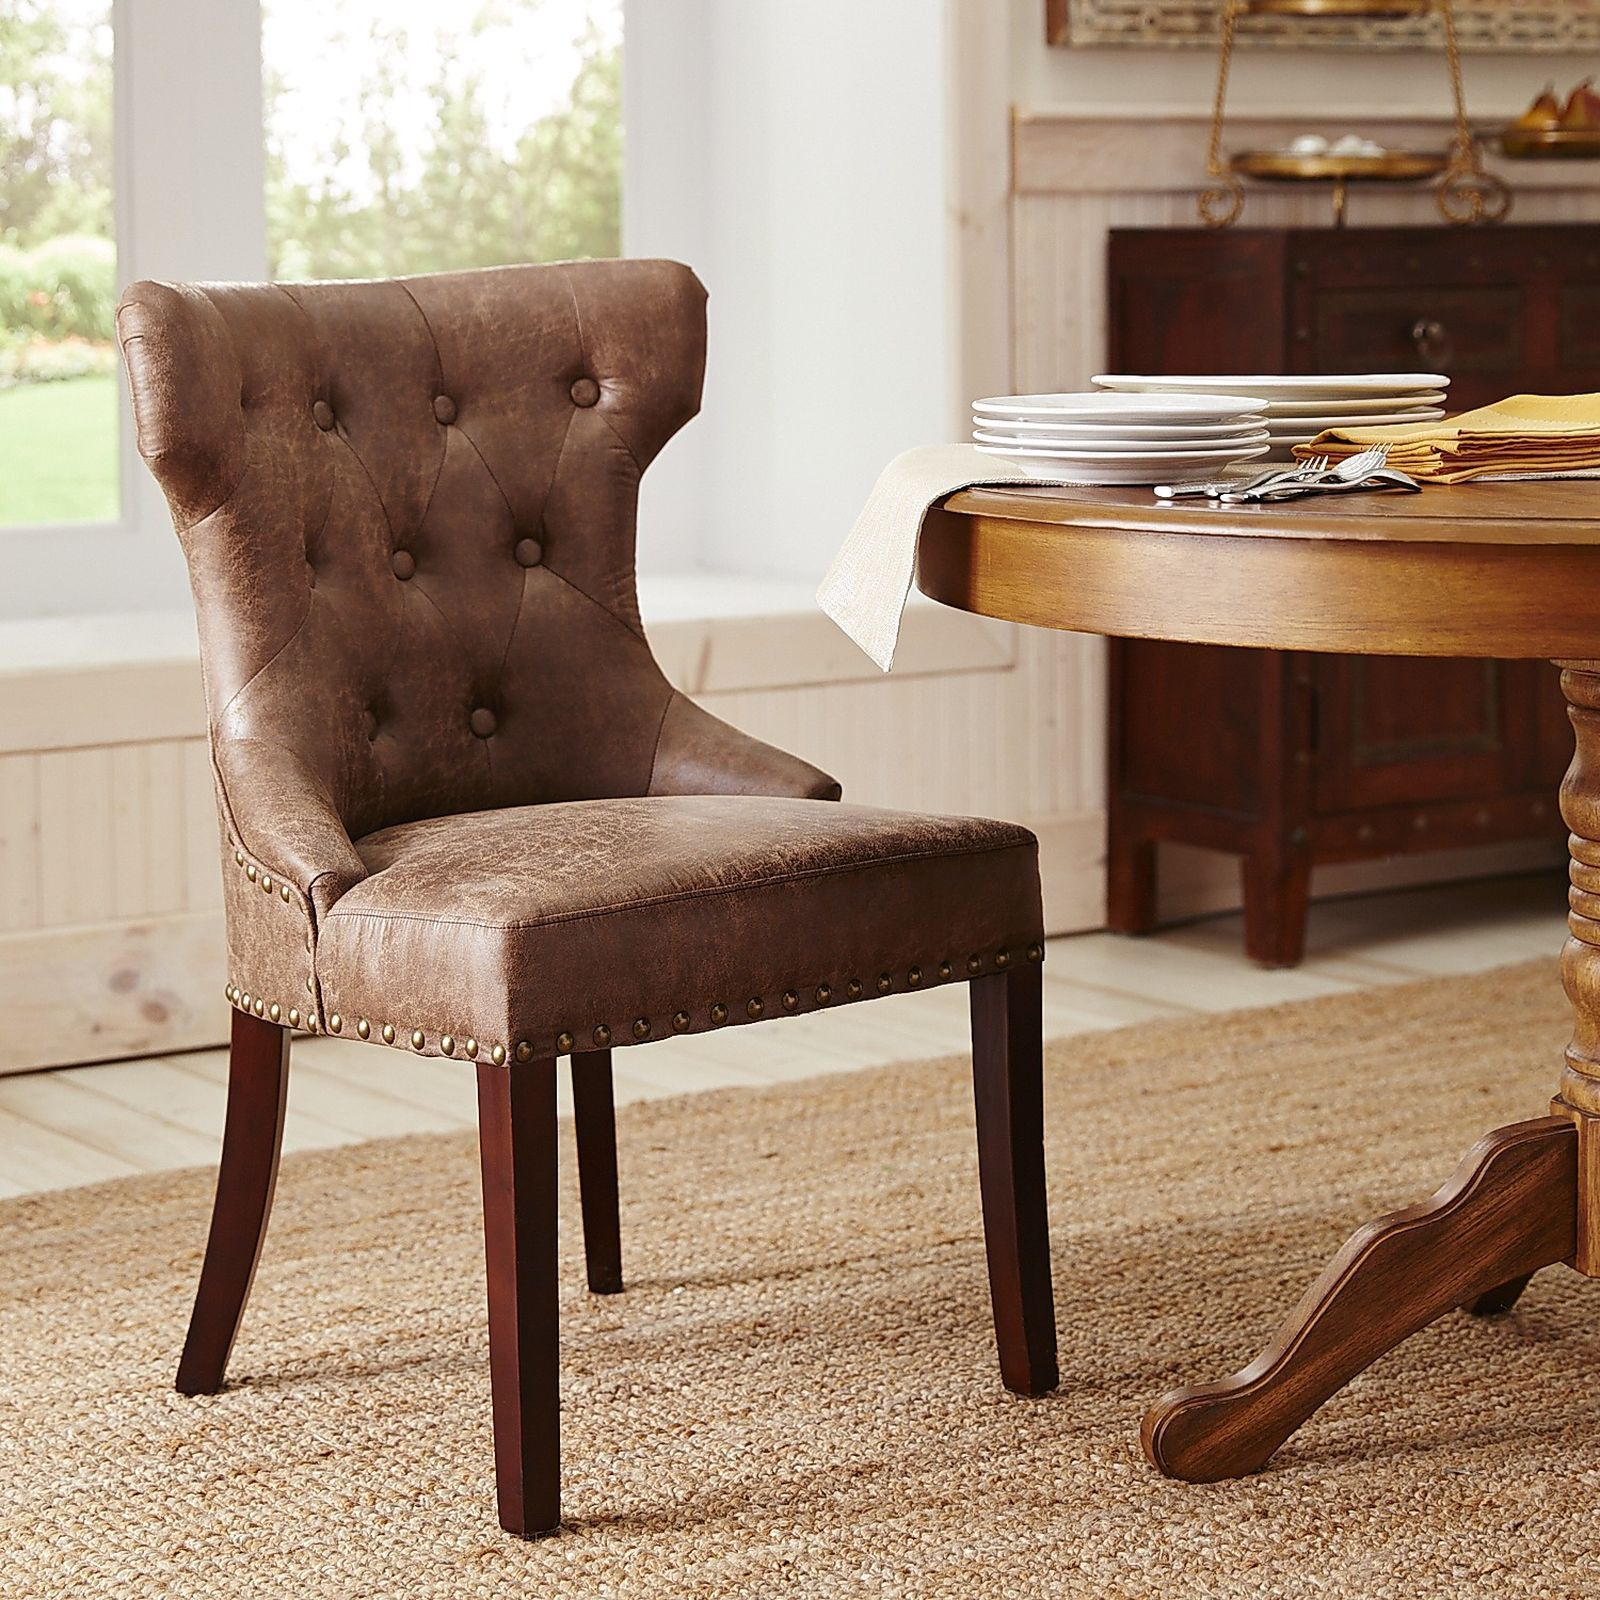 Hourglass Dining Chair   Espresso | Pier 1 Imports